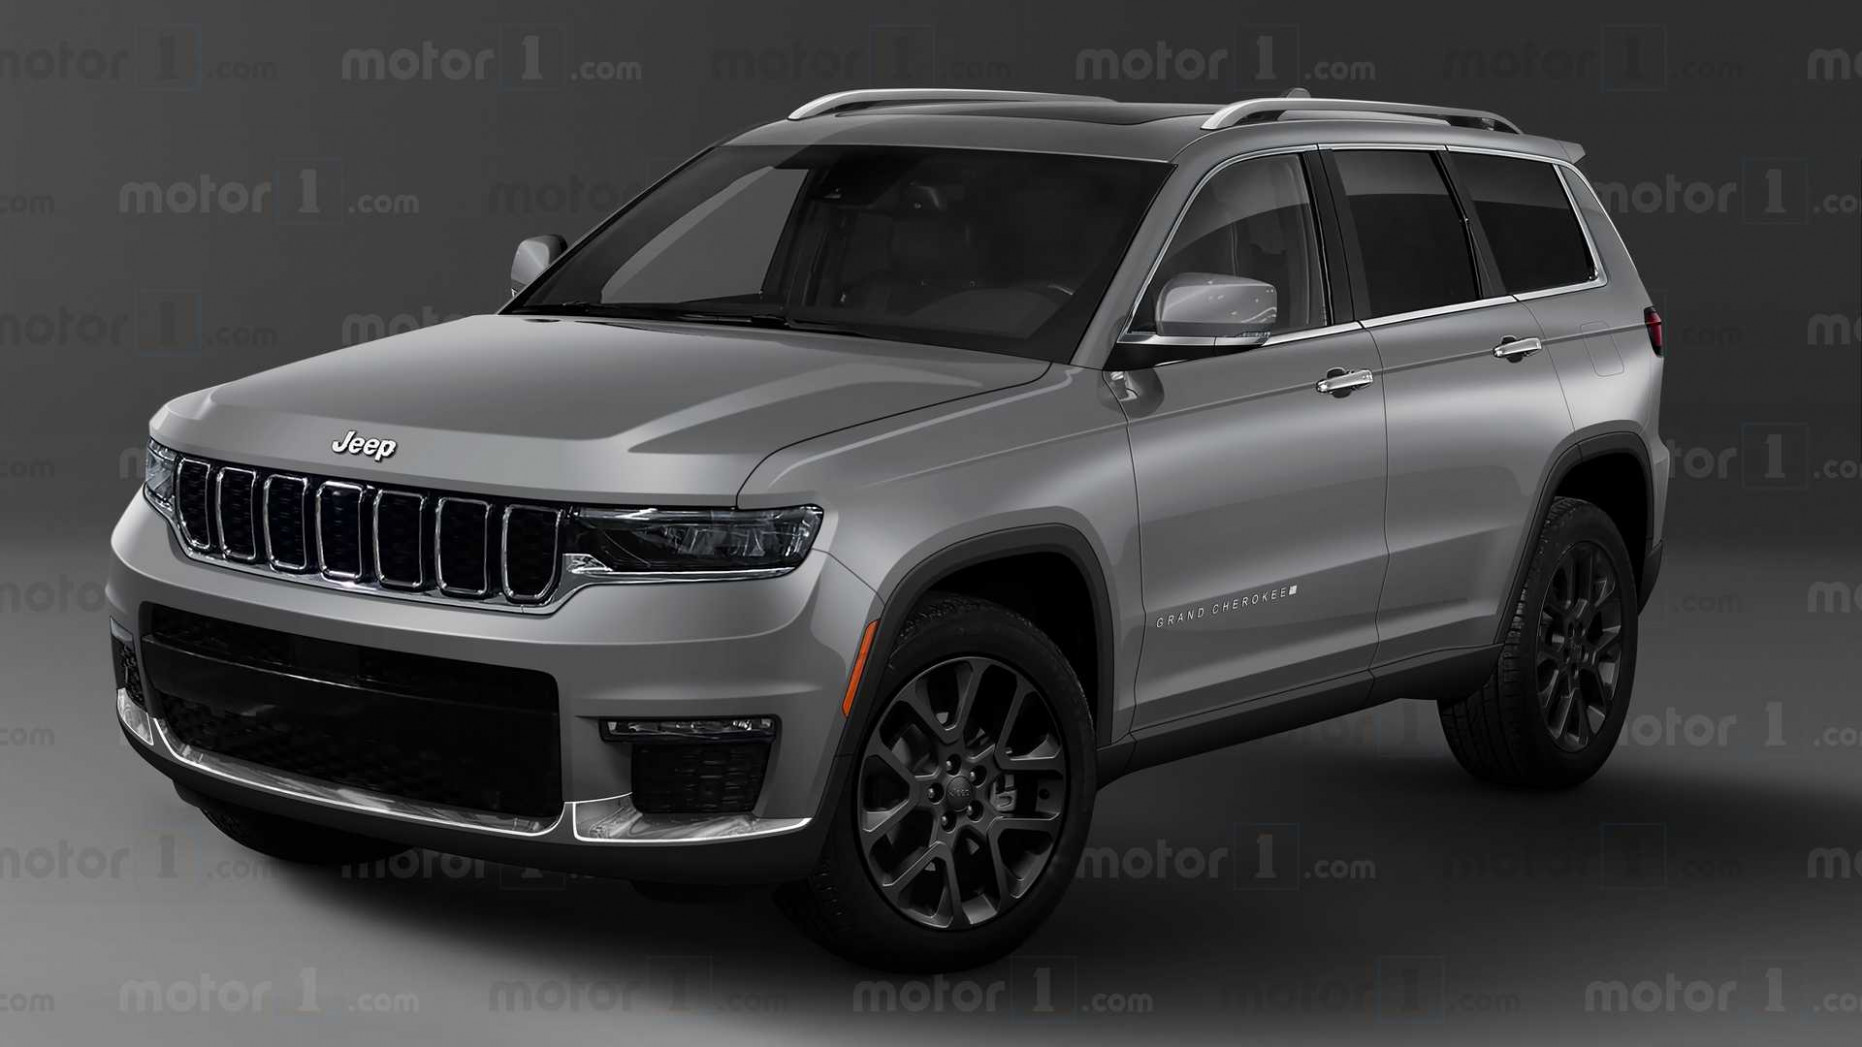 New Model and Performance 2022 Jeep Grand Cherokee Diesel